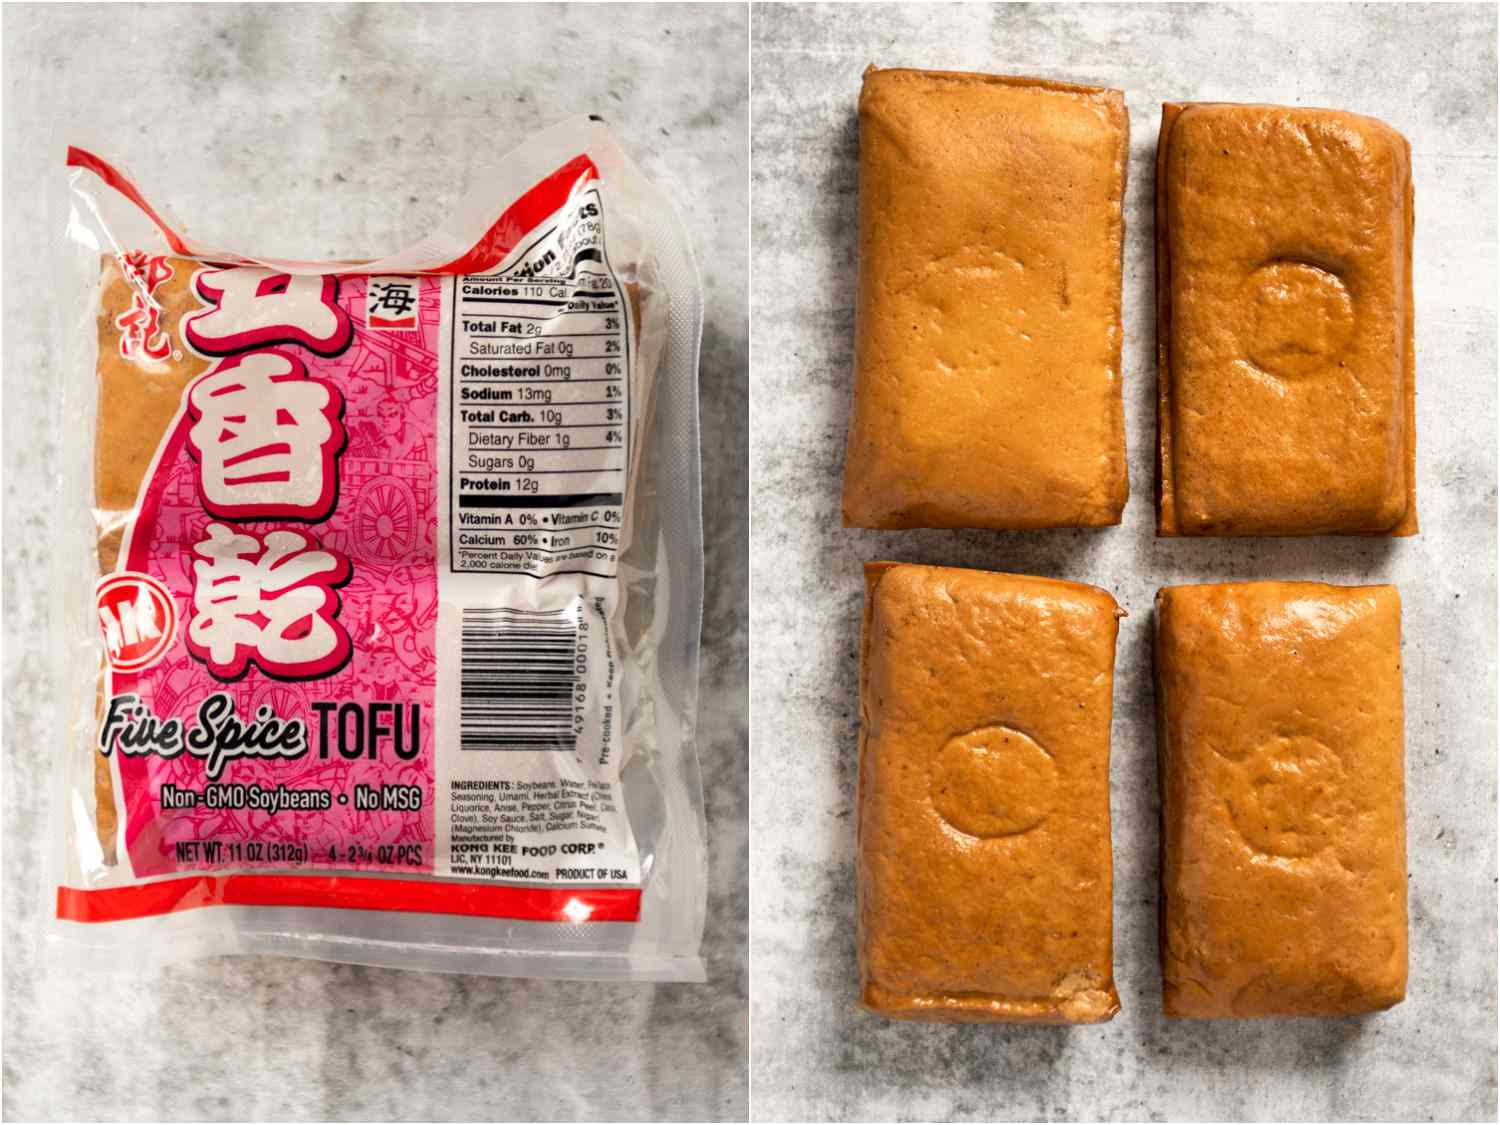 collage: five-spice tofu in packaging; unpackaged